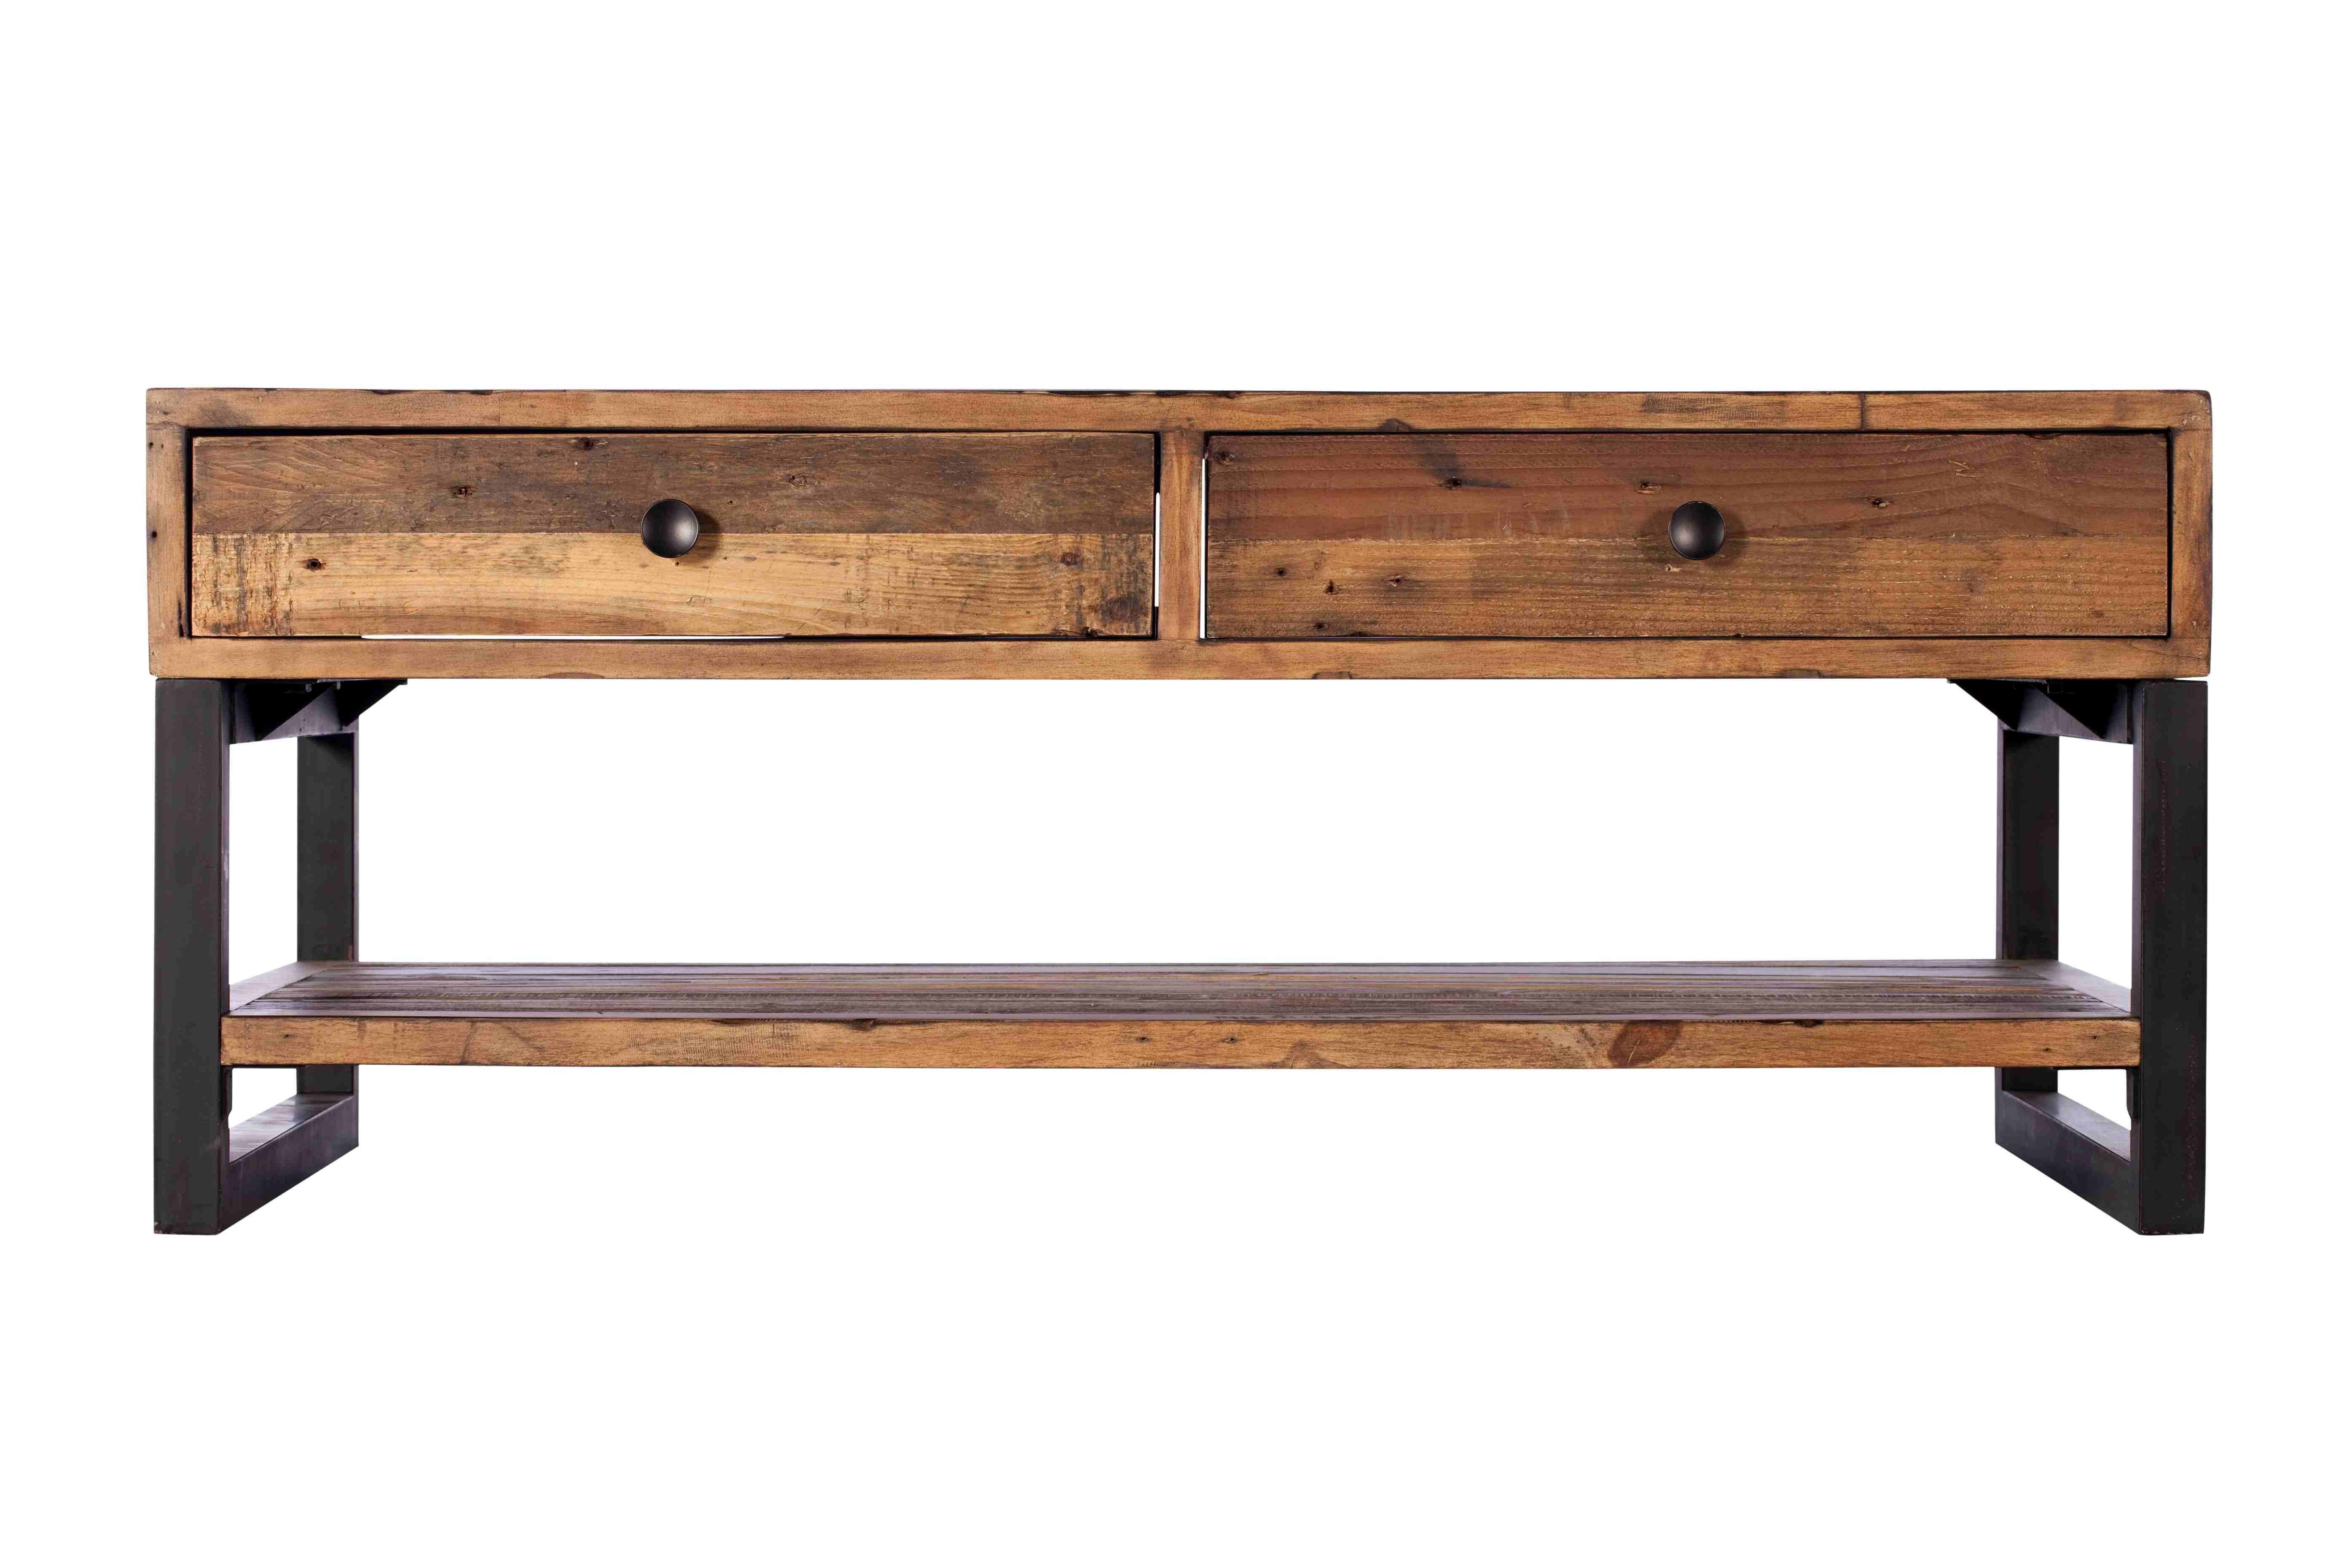 The quayside reclaimed coffee table wotnotantiques £371